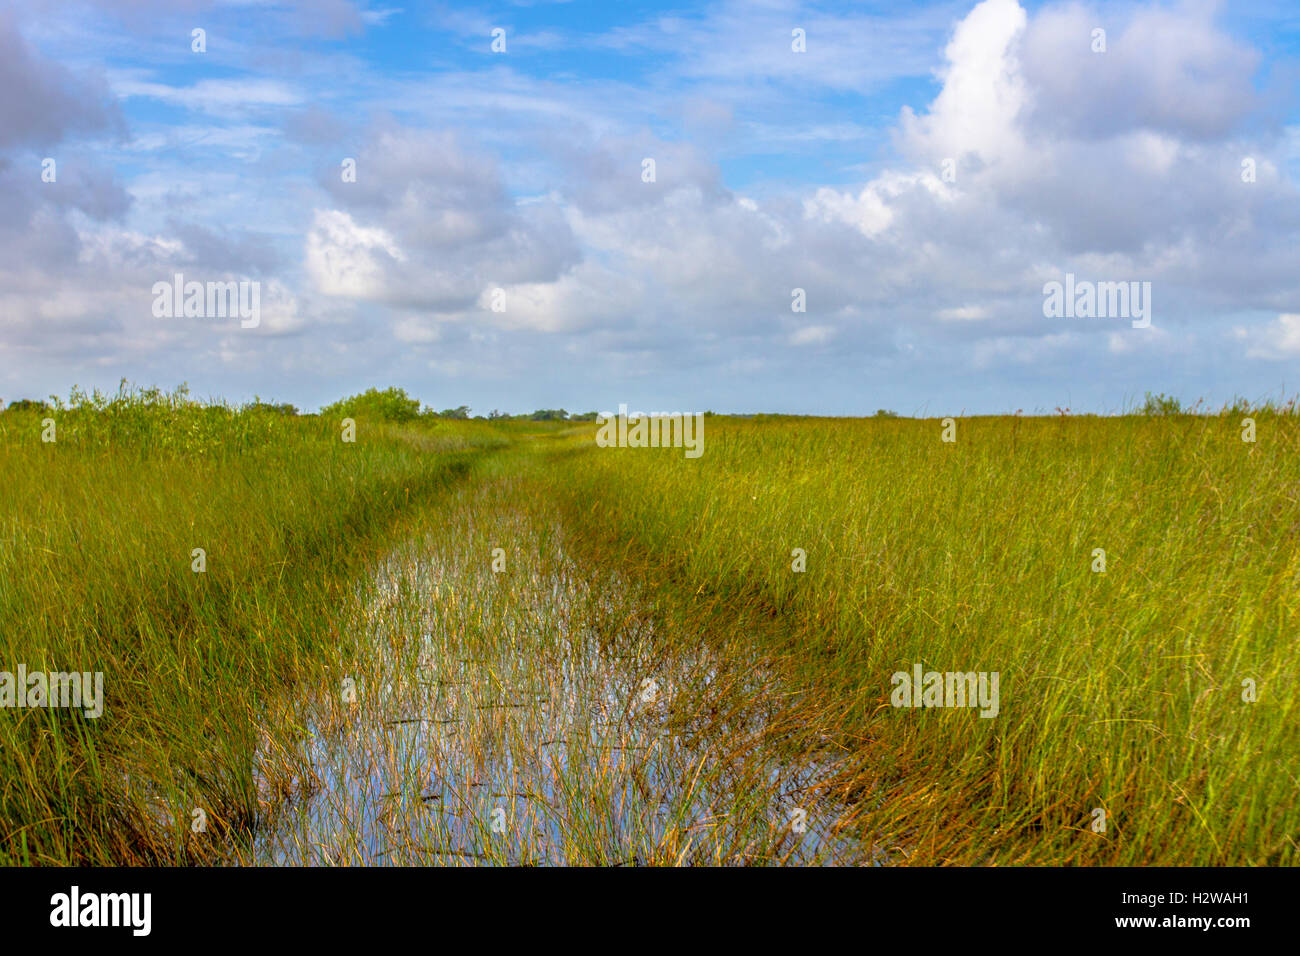 Sun shining on the golden sawgrass in the Everglades National Park - Stock Image